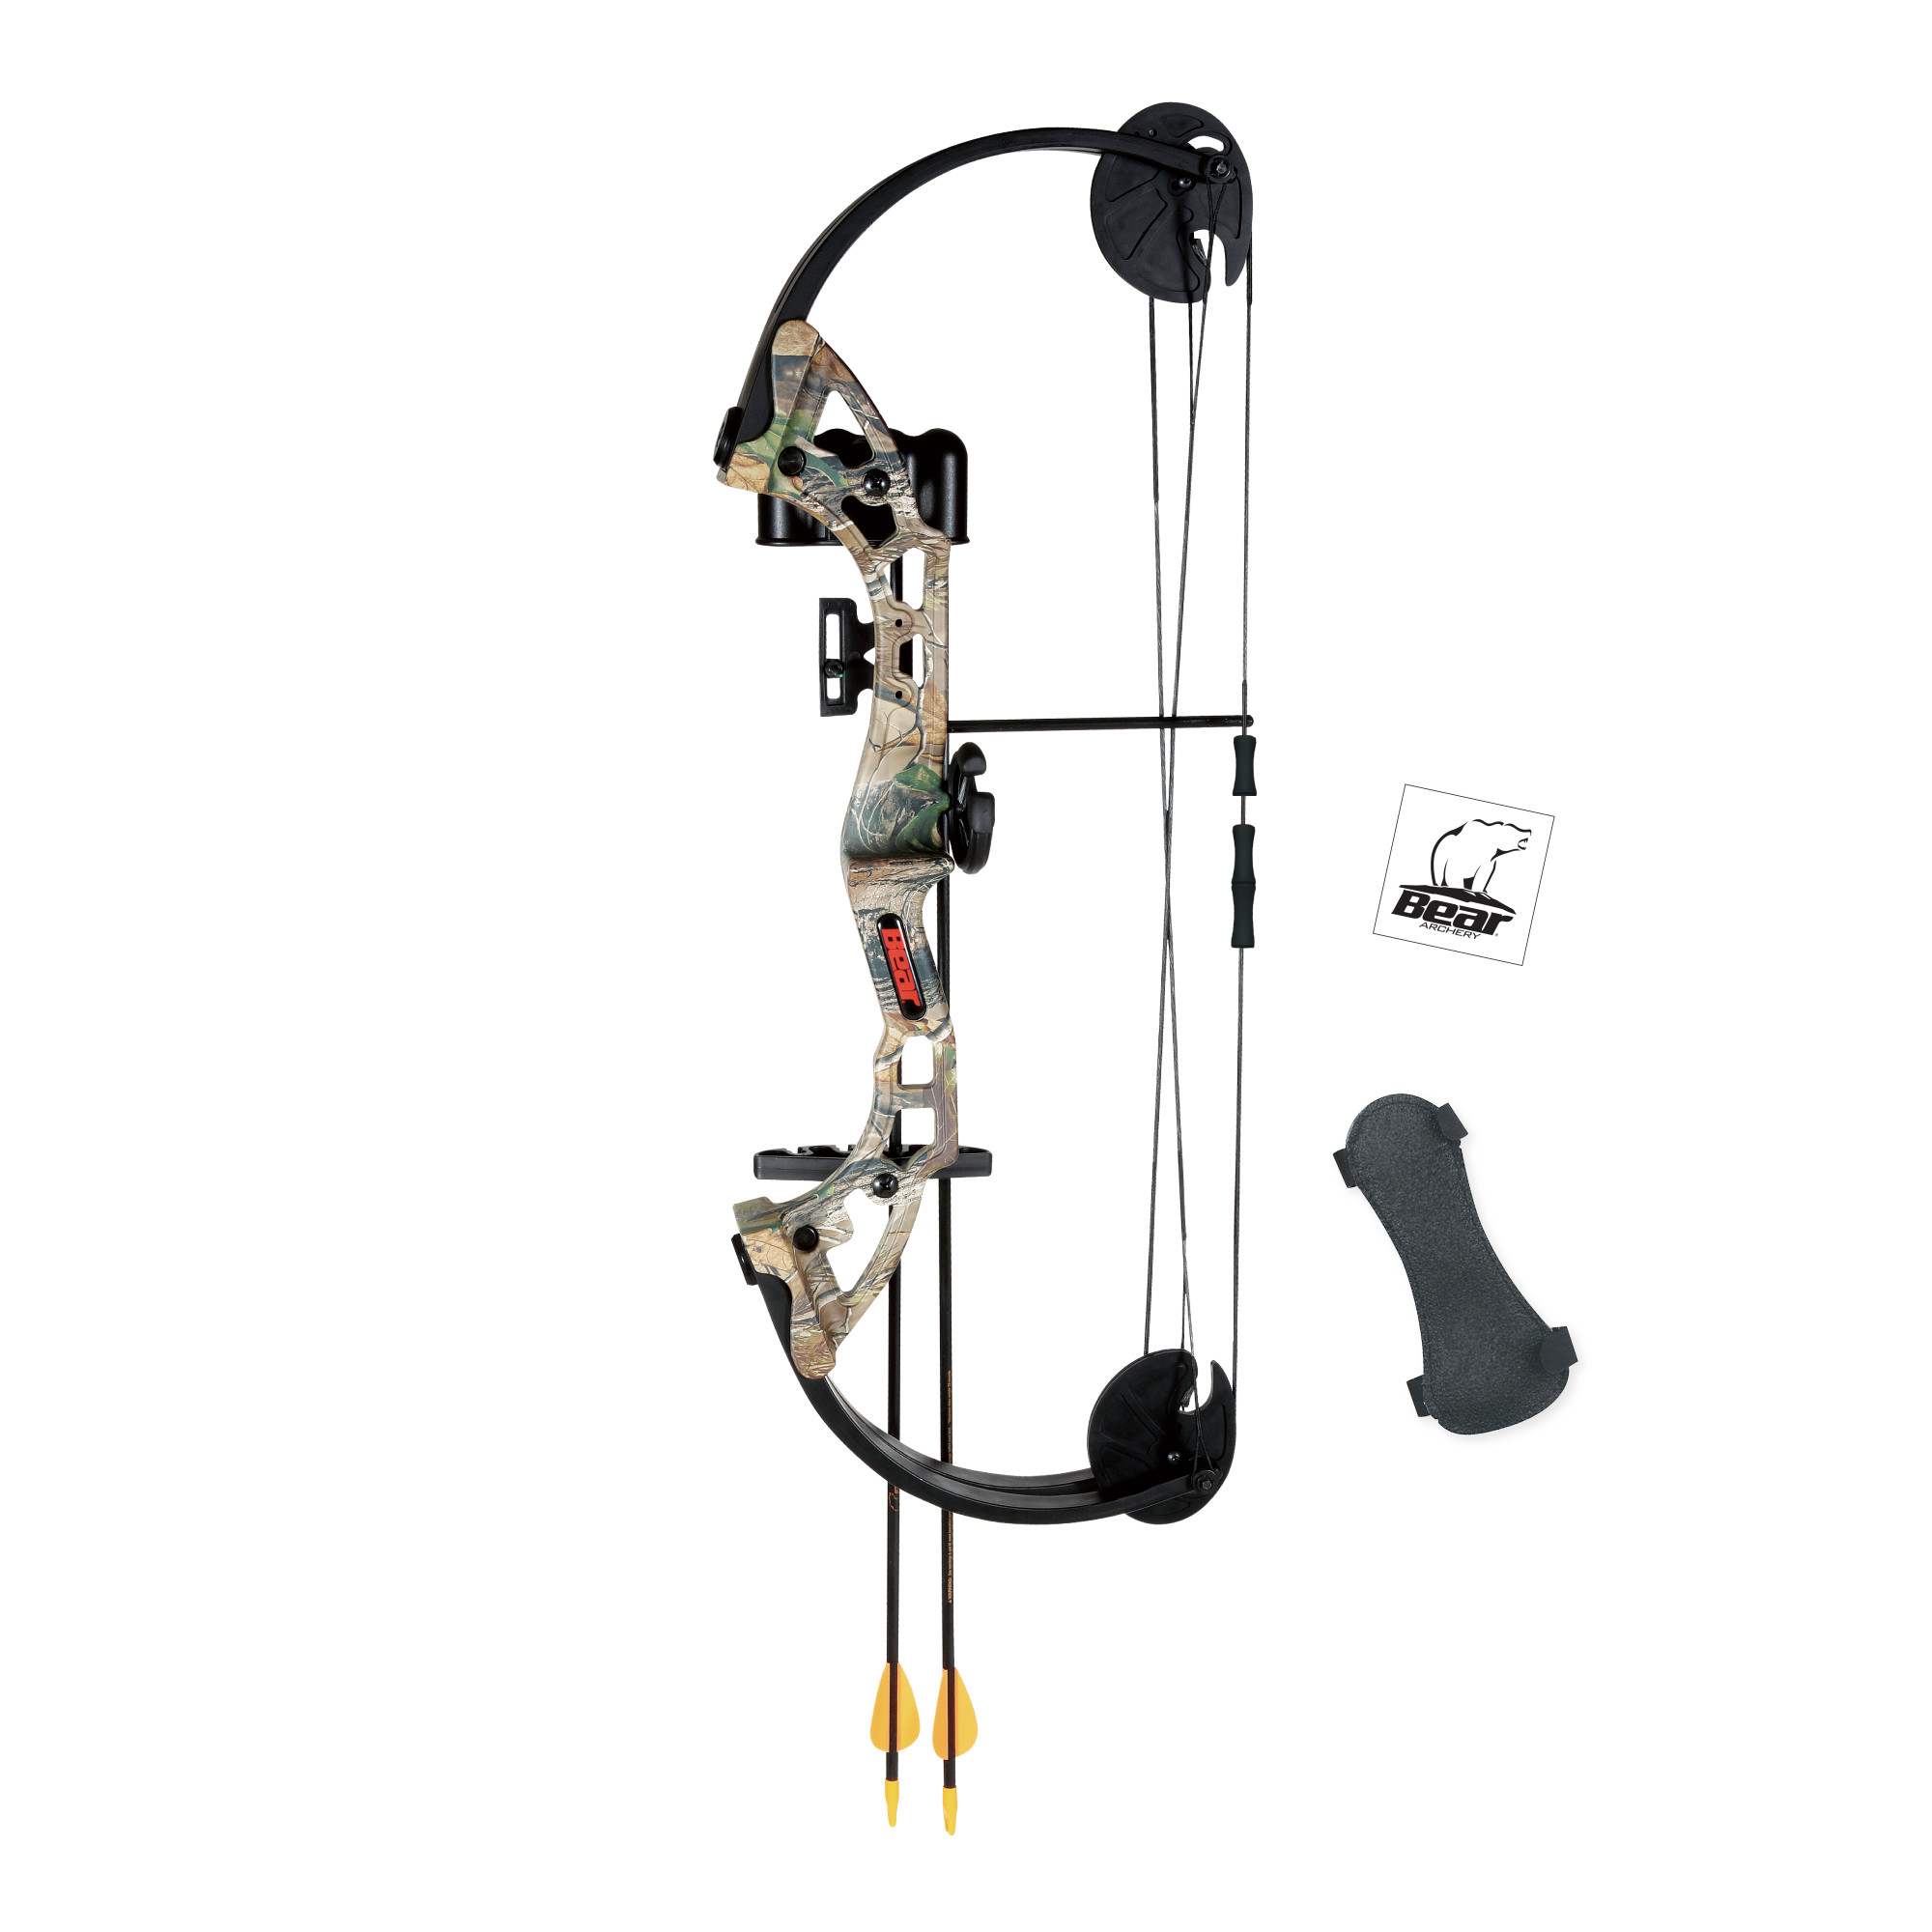 Bear Archery Warrior Youth Bow Includes Trophy Ridge Whisker Biscuit, Armguard, Quiver, and Arrows Recommended for Ages 11 and Up